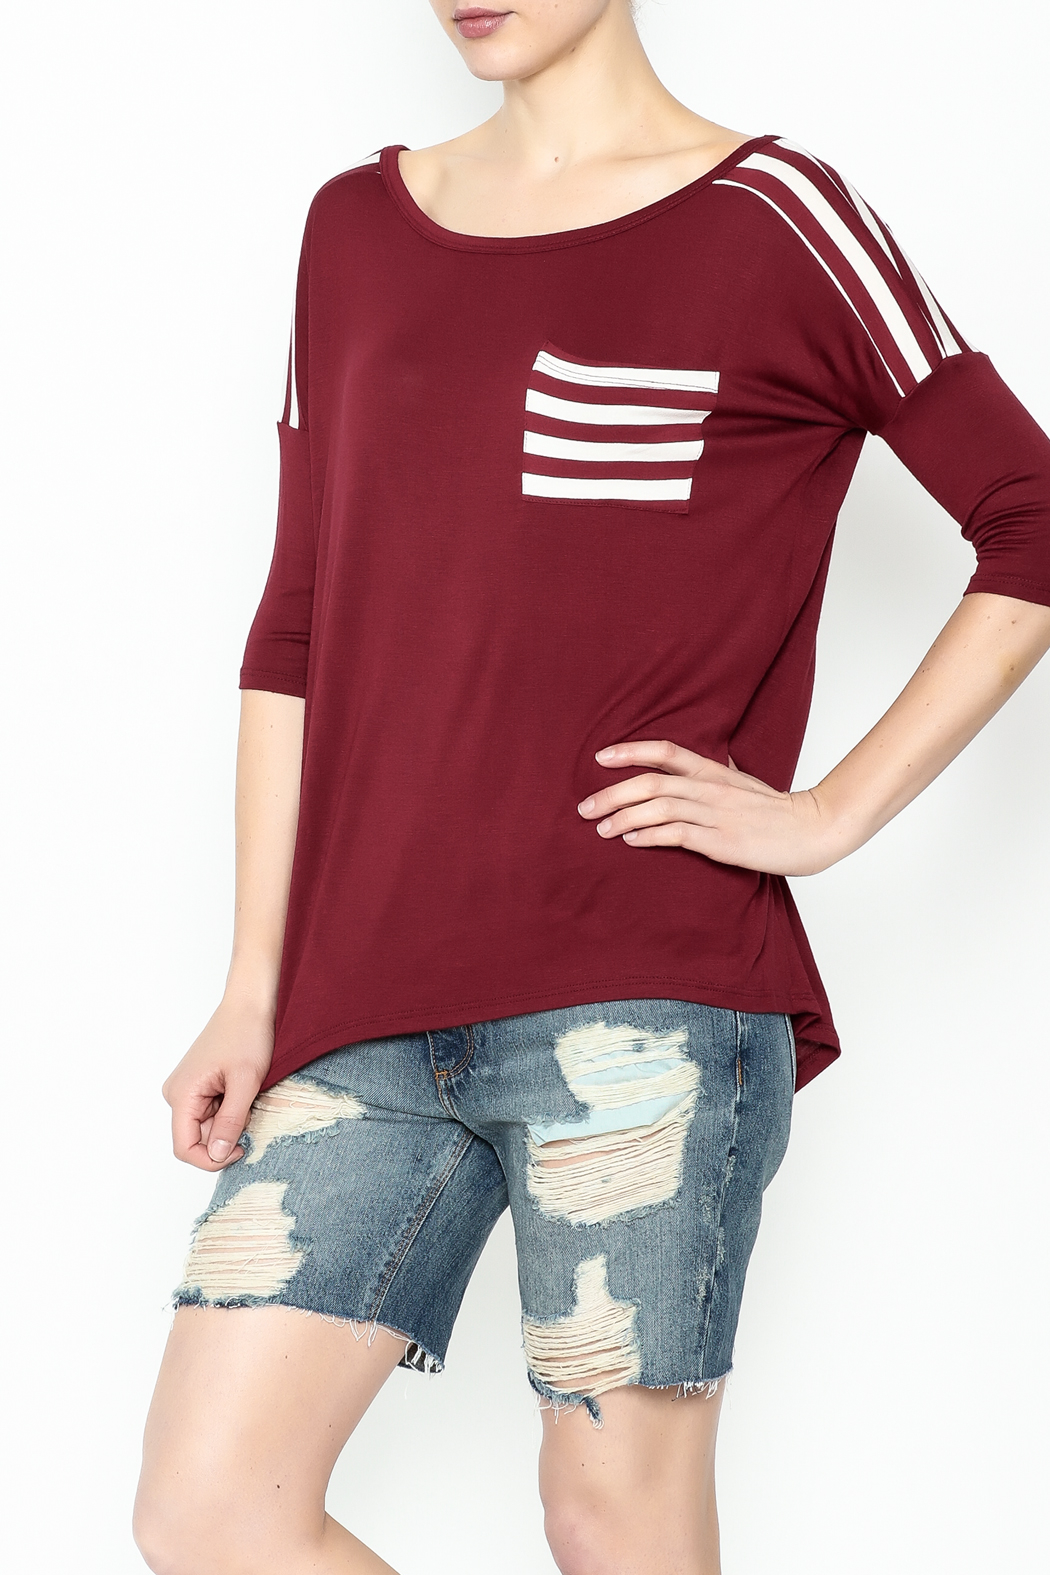 Daisy's Fashions Stripe Pocket Tee - Front Cropped Image